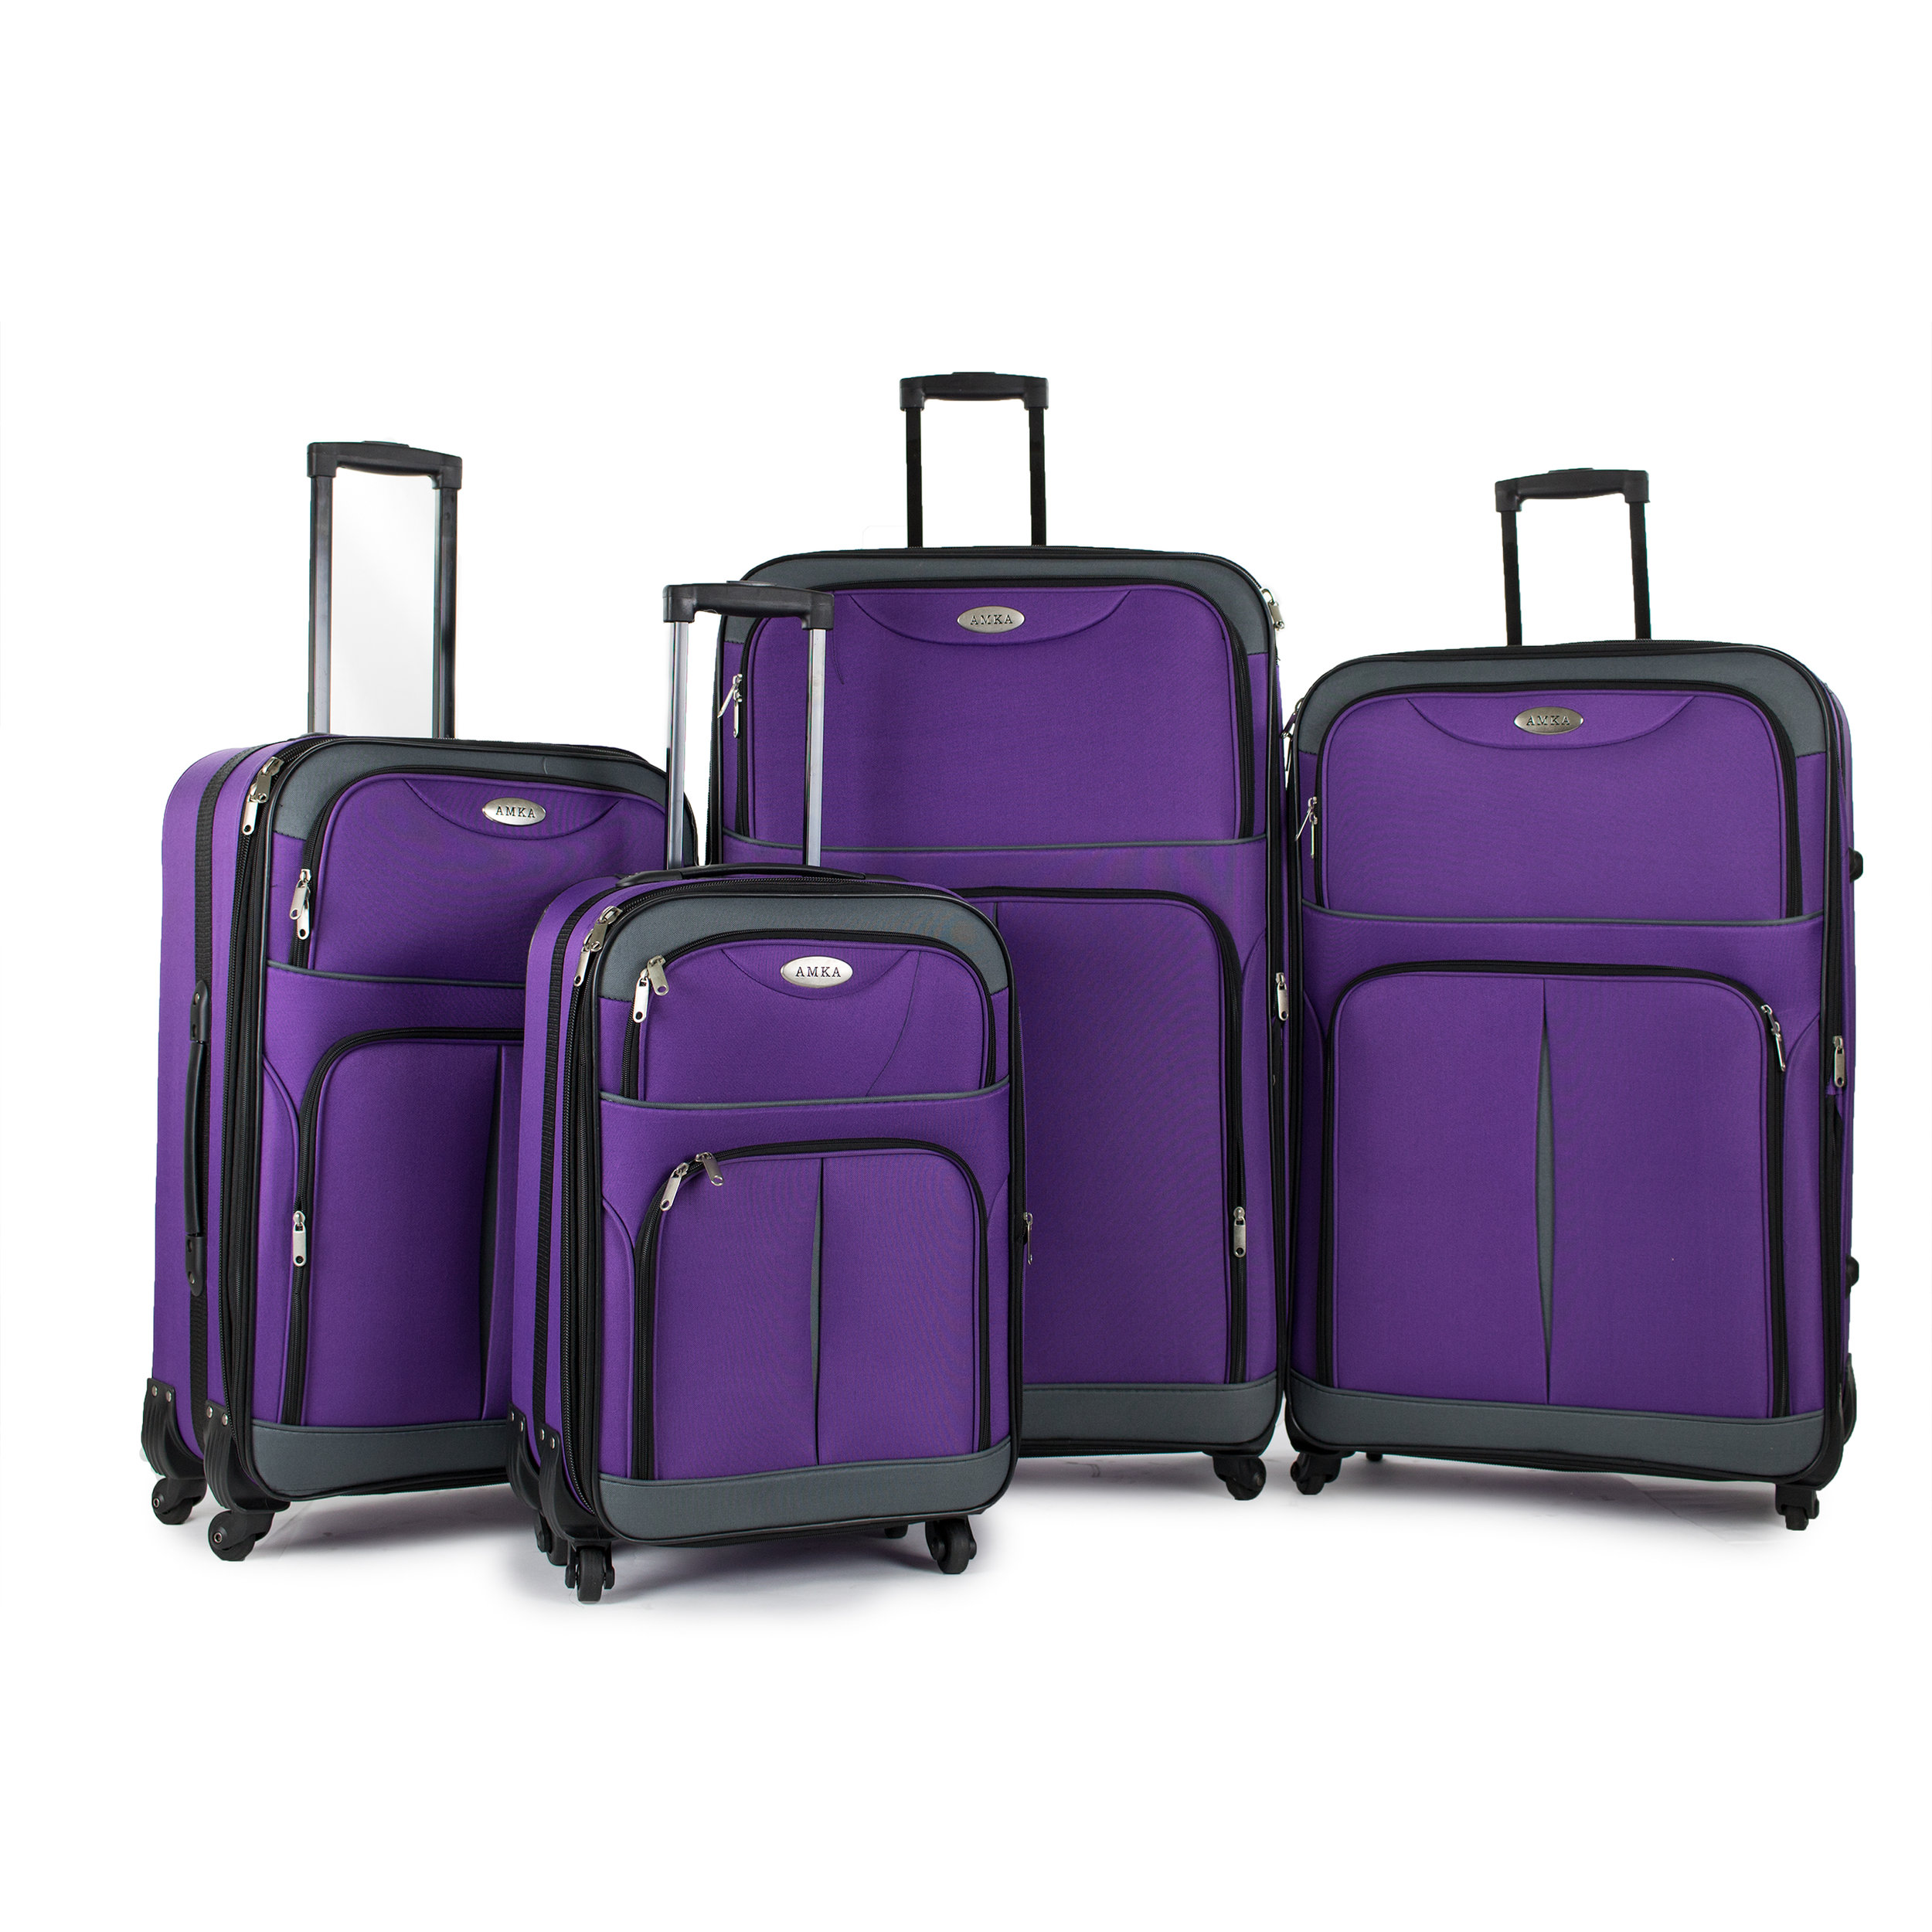 LD506-4W_Purple_4-Set_3000.jpg